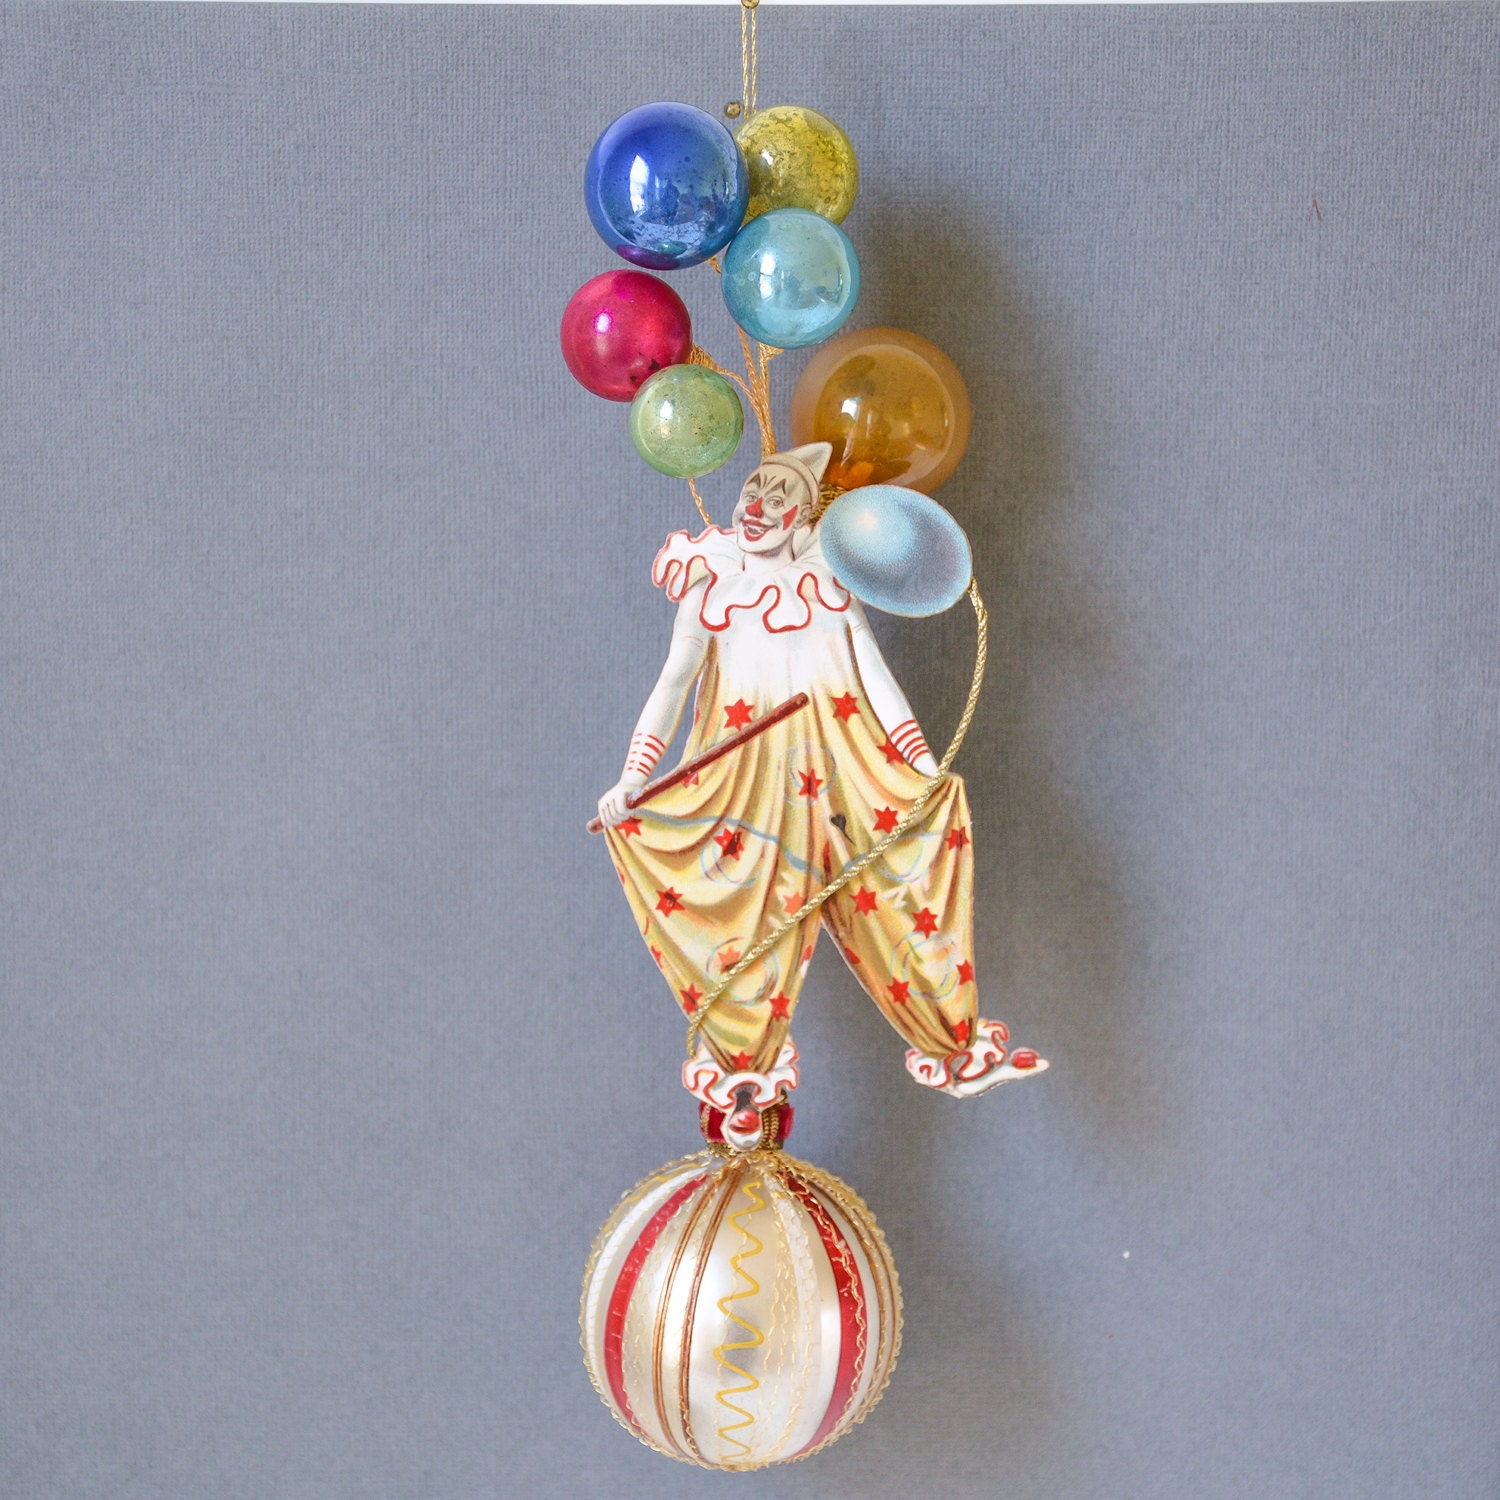 Victorian Father Christmas Decorations: Victorian Christmas Ornaments Clown Ornament Victorian